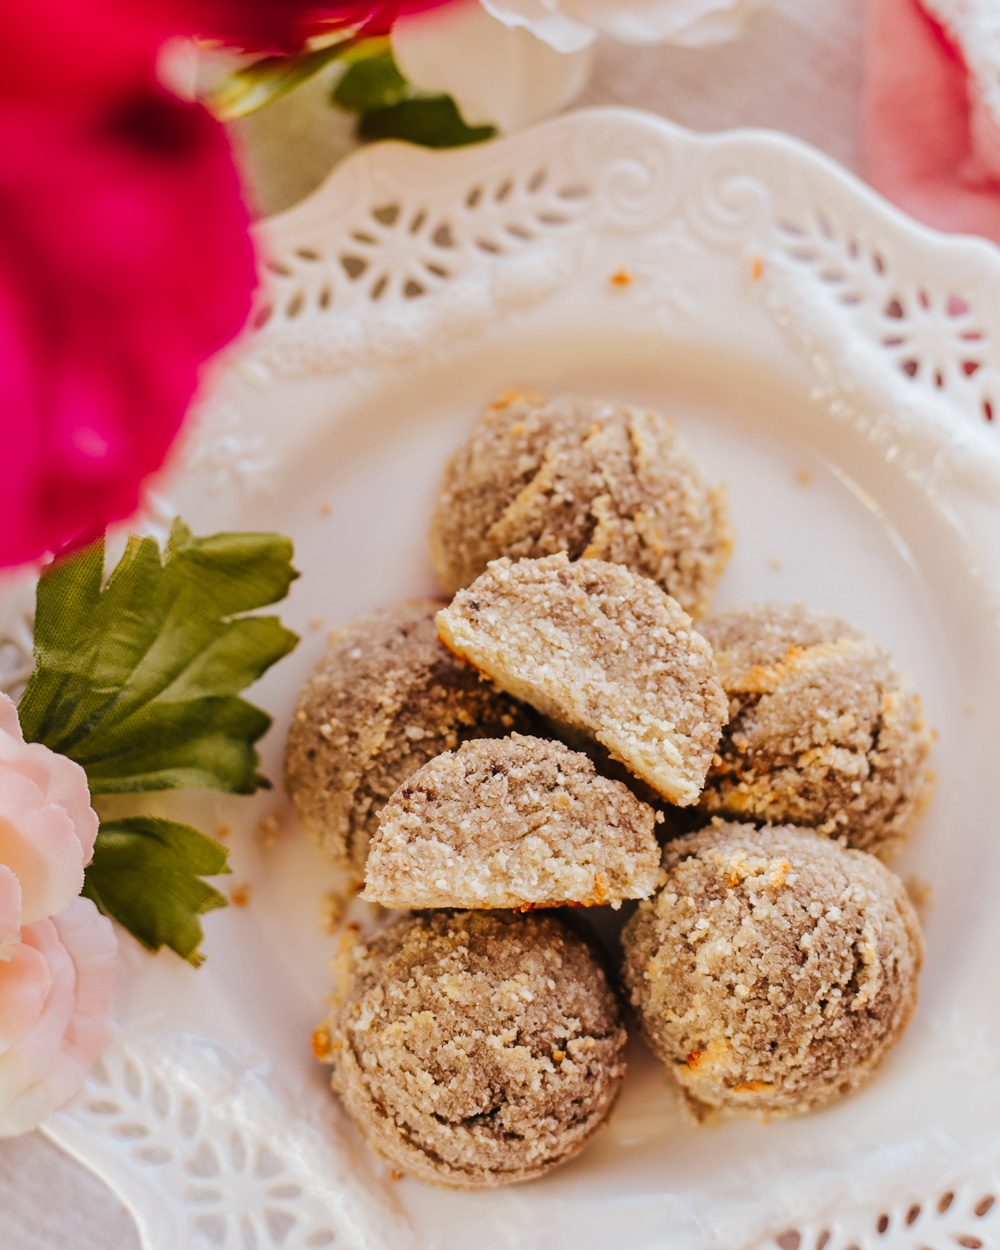 These Healthy All-Natural Sugar-Free Almond Cookies are all-natural, low-calorie, gluten-free, paleo, high in protein without protein powders, delicious and very easy to make!